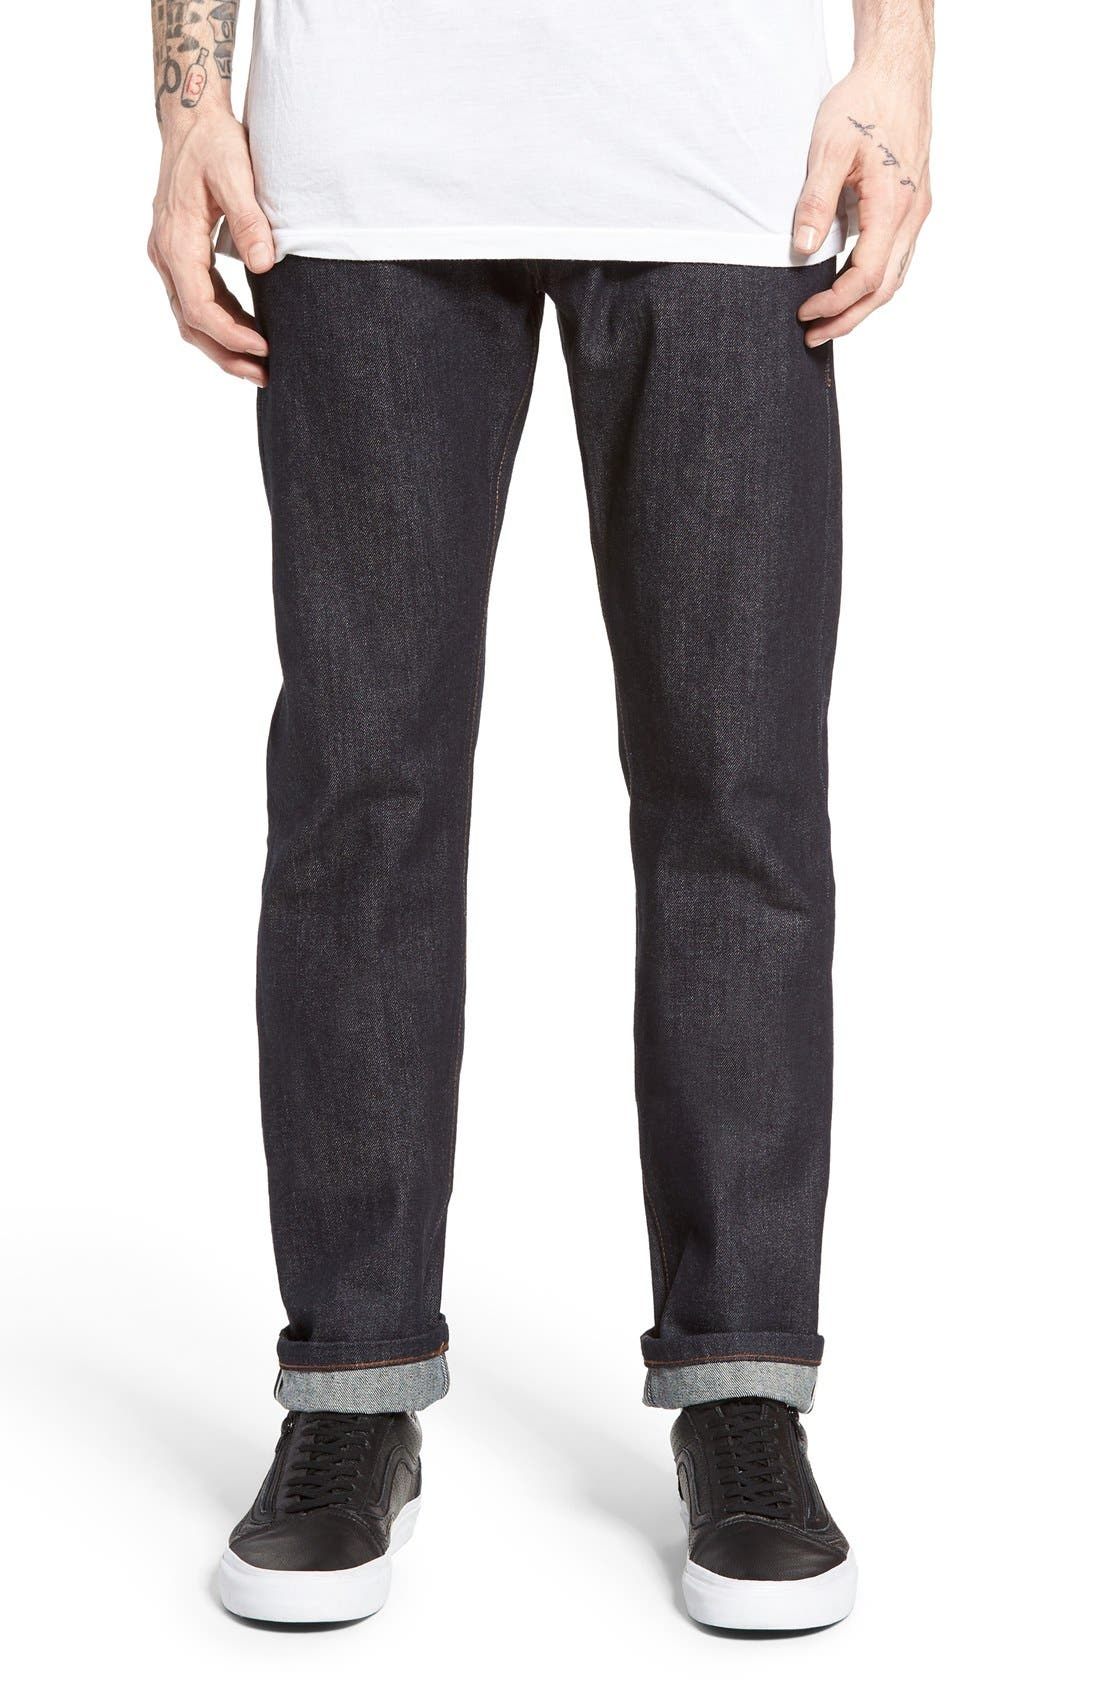 Main Image - The Unbranded Brand UB201 Tapered Fit Raw Selvedge Jeans